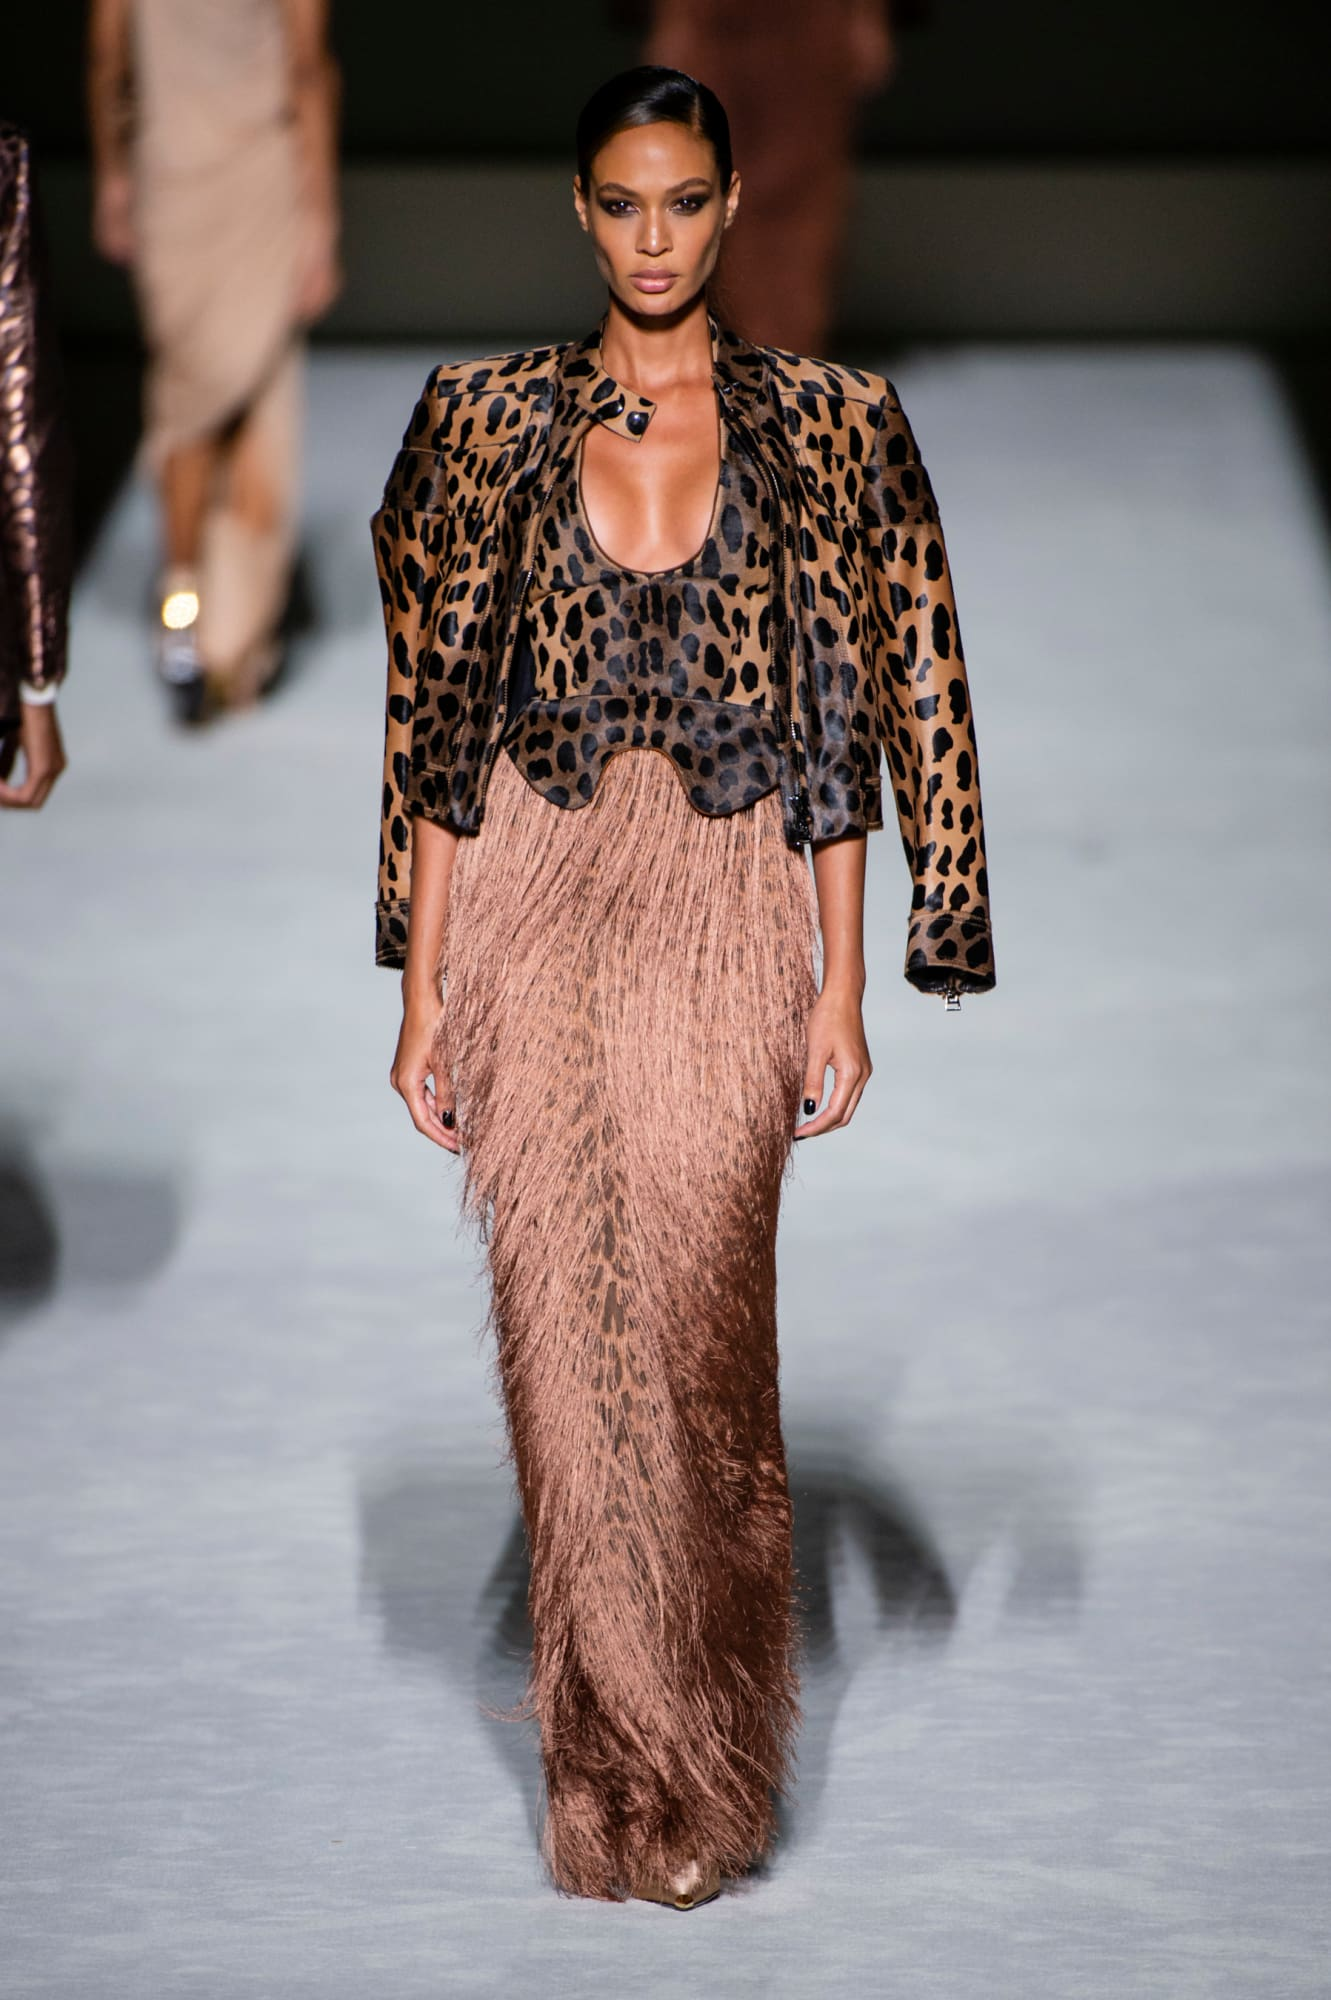 Tom Ford spring 2019 collection, animal print and fringe dress